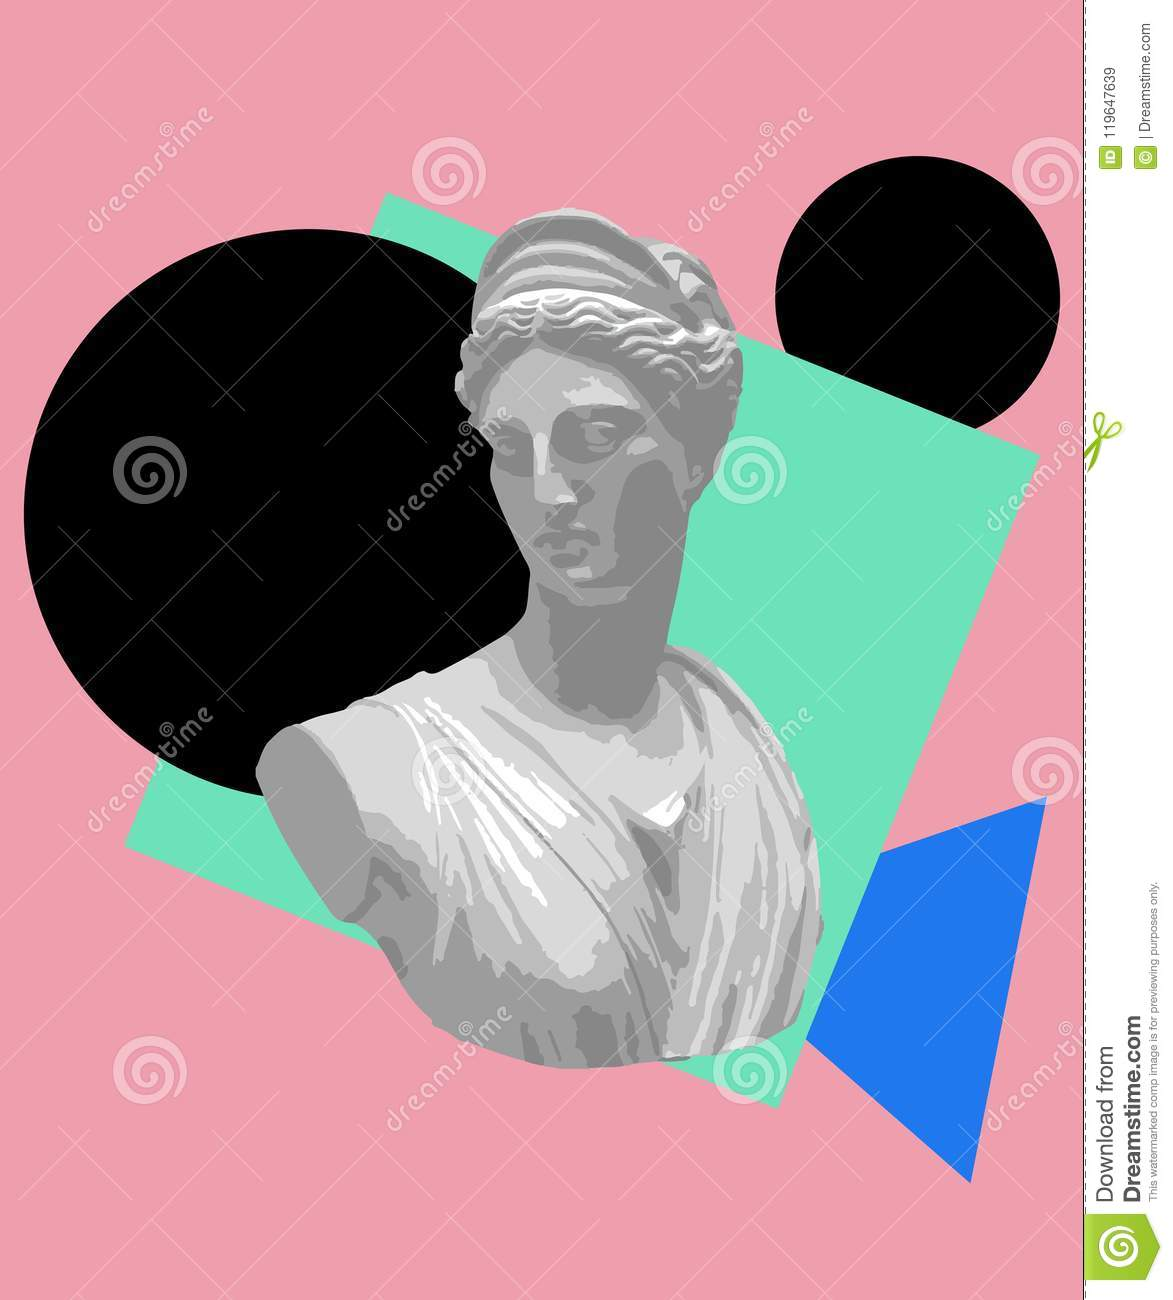 Vaporwave Aesthetic T Shirt Illustration Vector Graphic For T Shirt Printing And Clothing Aesthetic Wallpaper Stock Vector Illustration Of Sewing Fabric 119647639